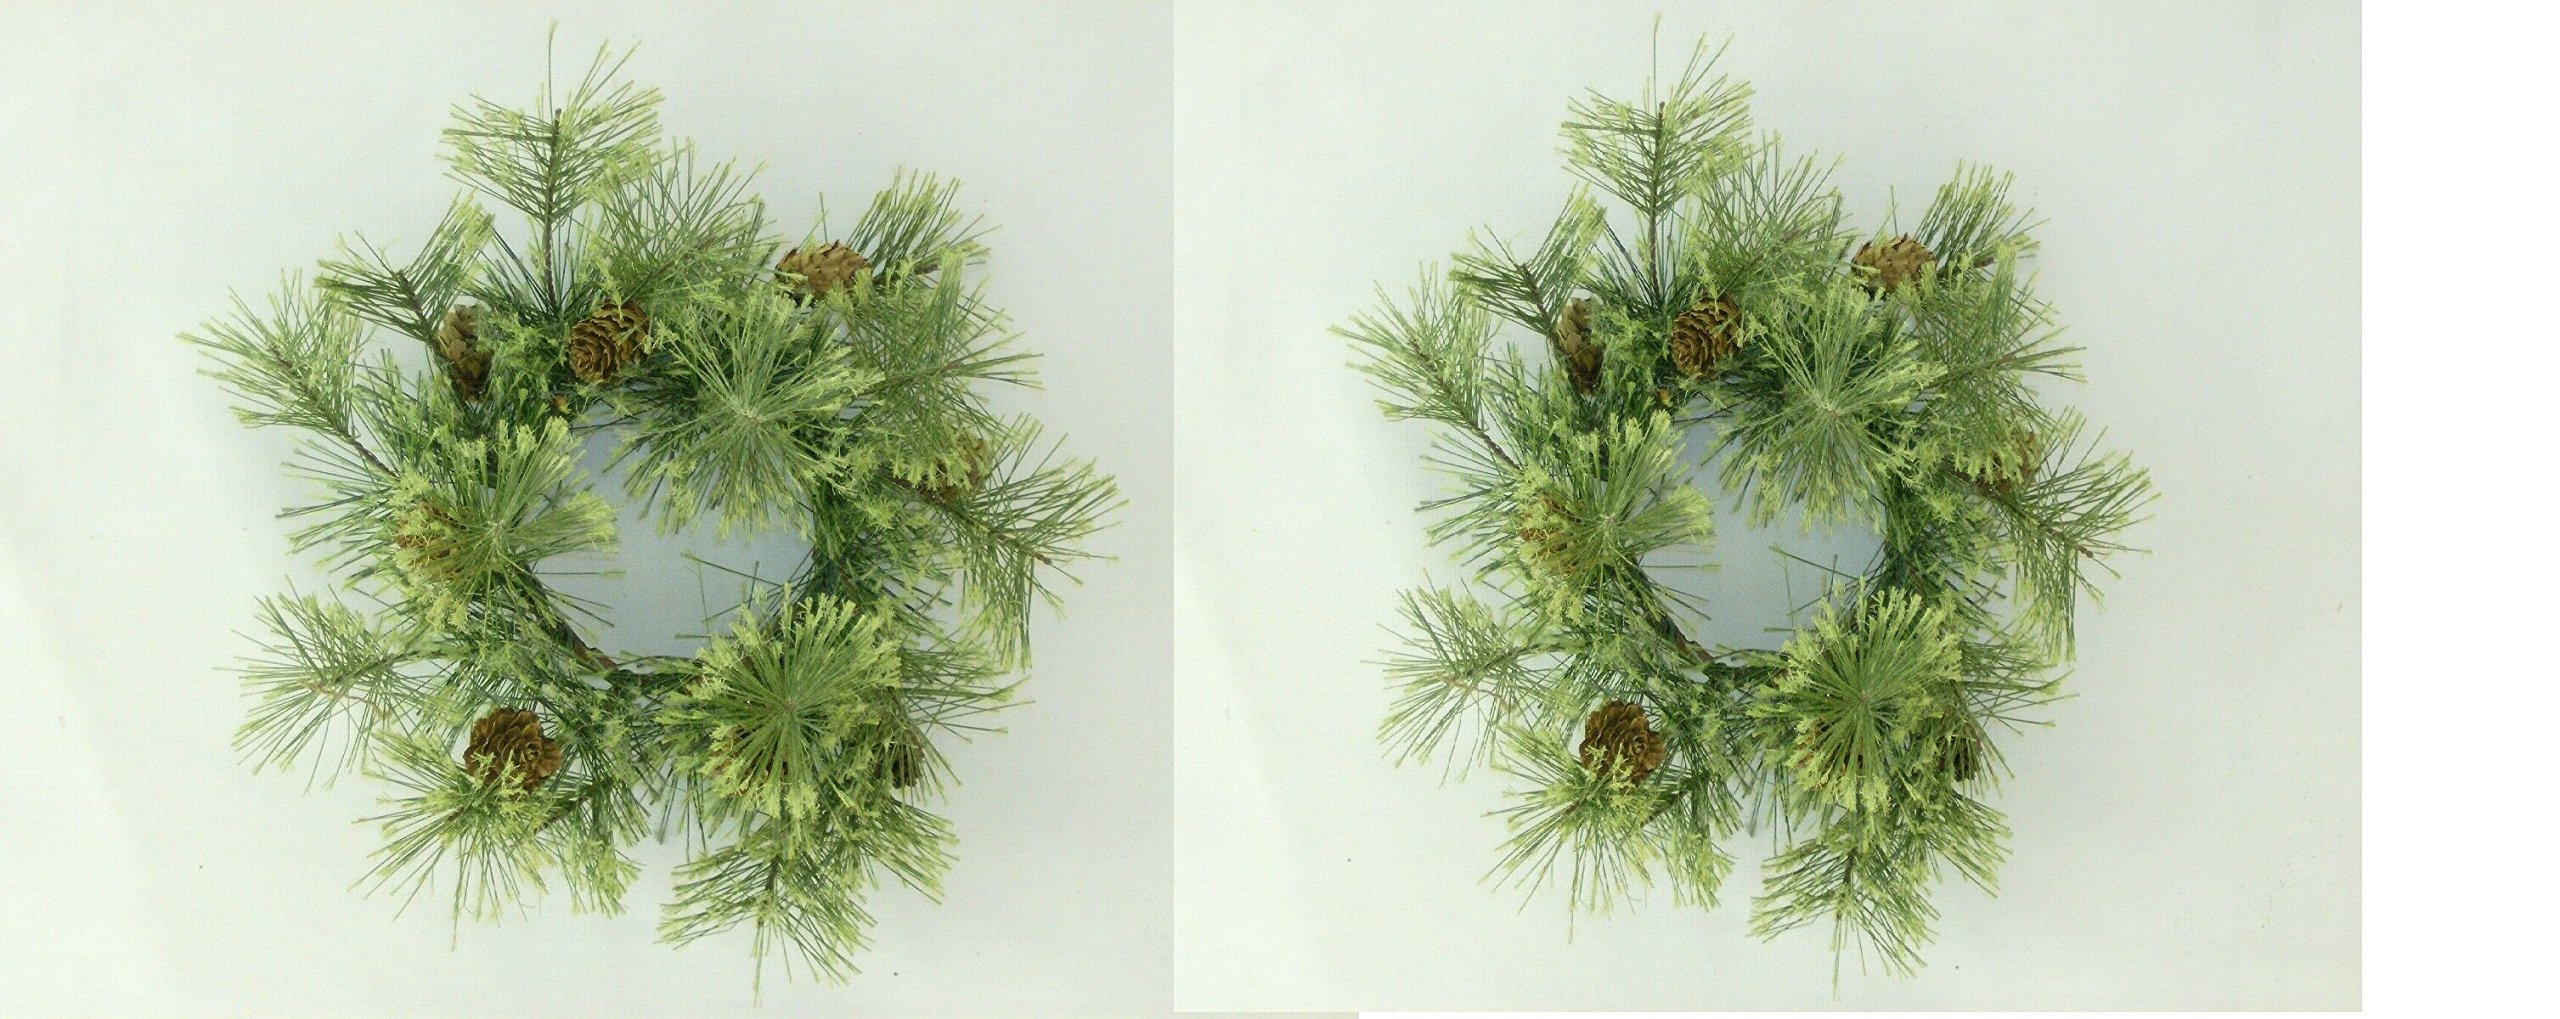 PAIR - Deluxe Smokey Pine Wreath with Pinecone Accents Choice of 3 Sizes (4 Inch)